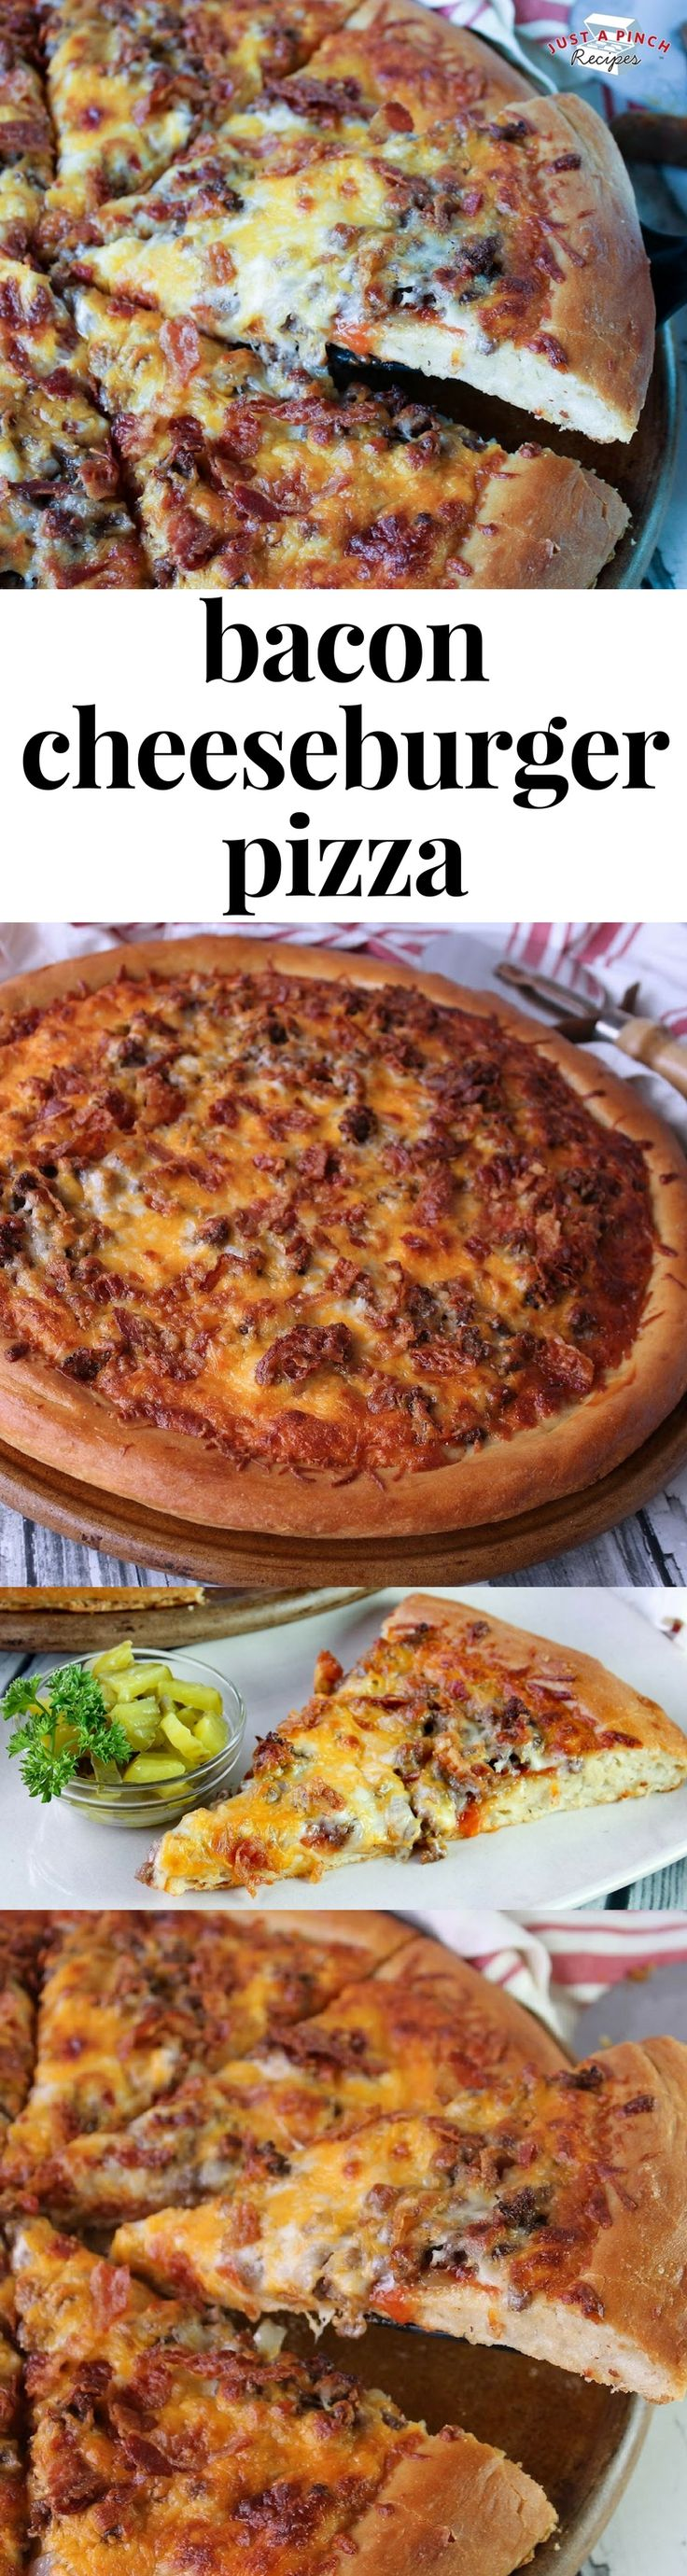 this bacon cheeseburger pizza is a great homemade pizza recipe that will be a delicious family dinner! #familydinner #pizza #pizzarecipe #dinnerrecipes #dinnertime